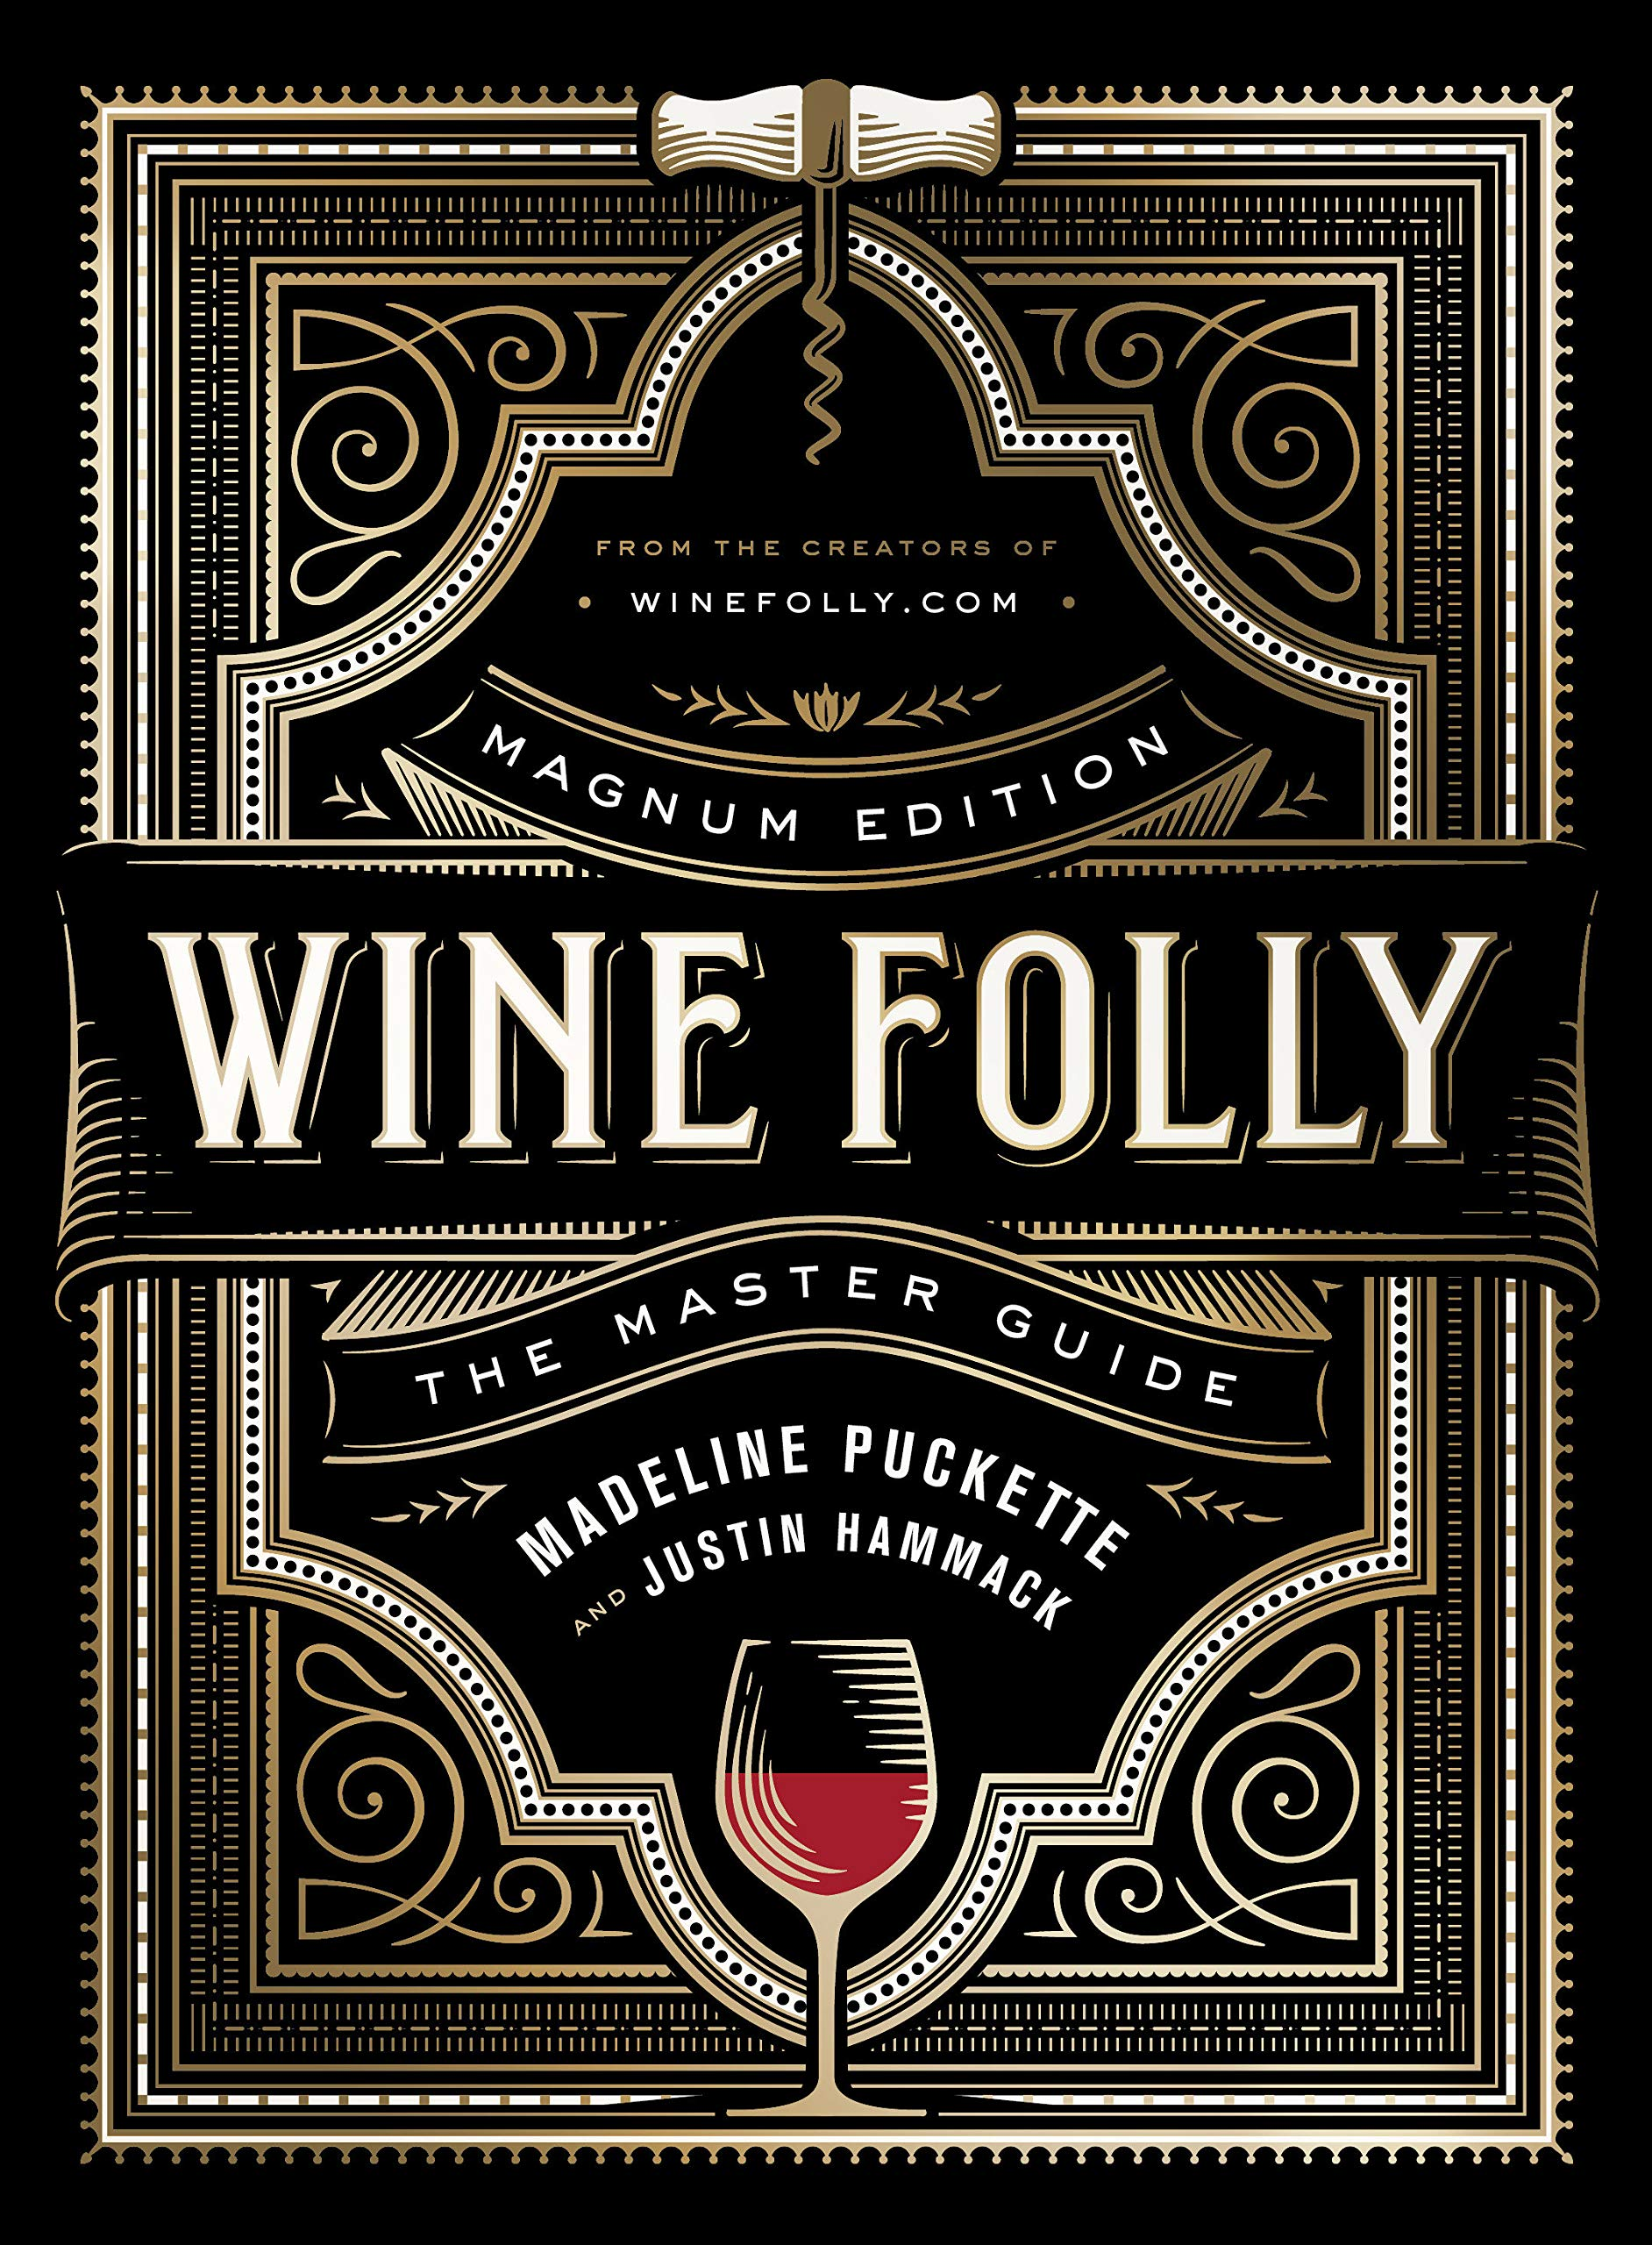 Wine Folly: Magnum Edition: The Master Guide by Avery